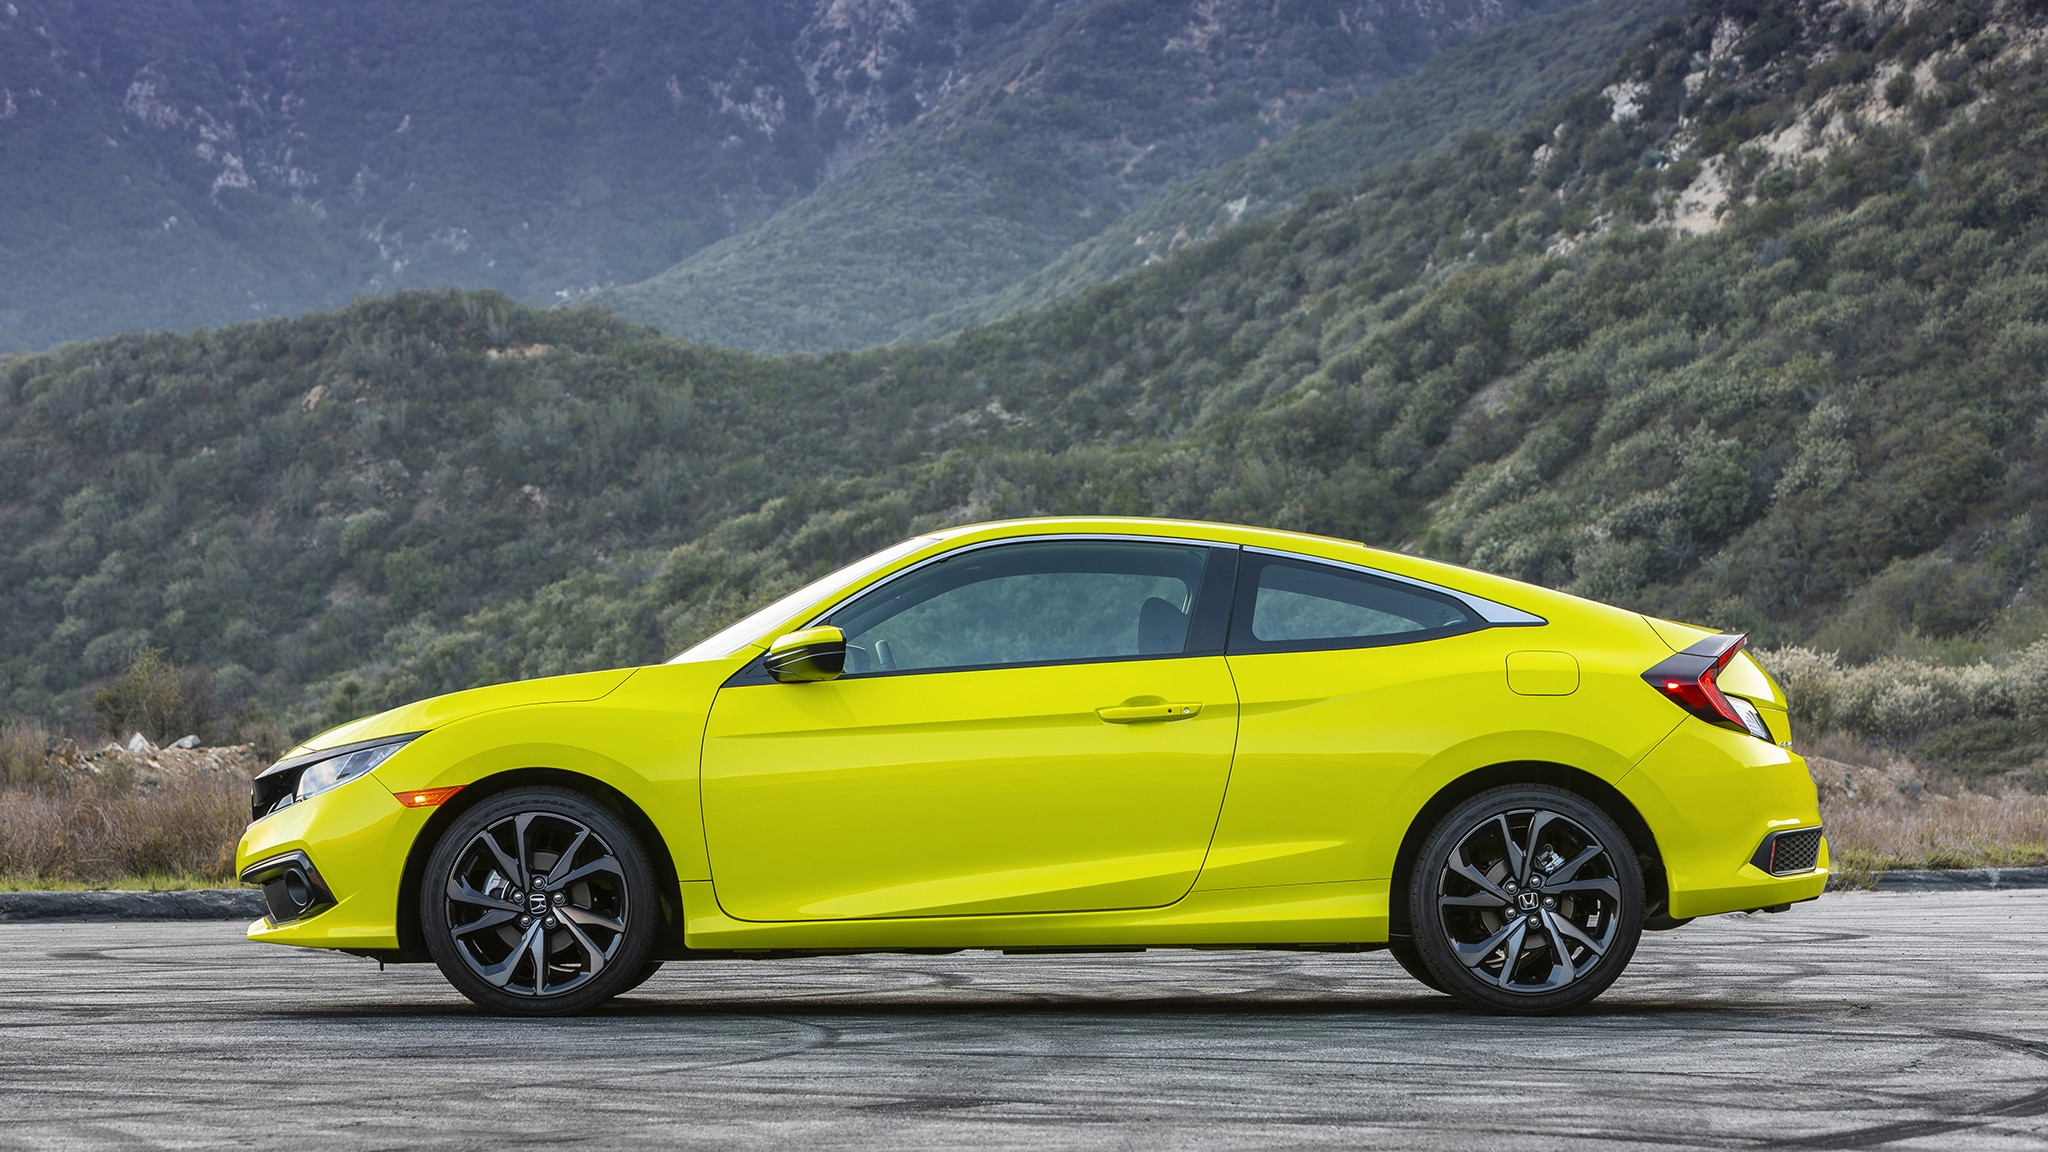 2019 Honda Civic First Drive How Its Changes Make It Even Manual Guide